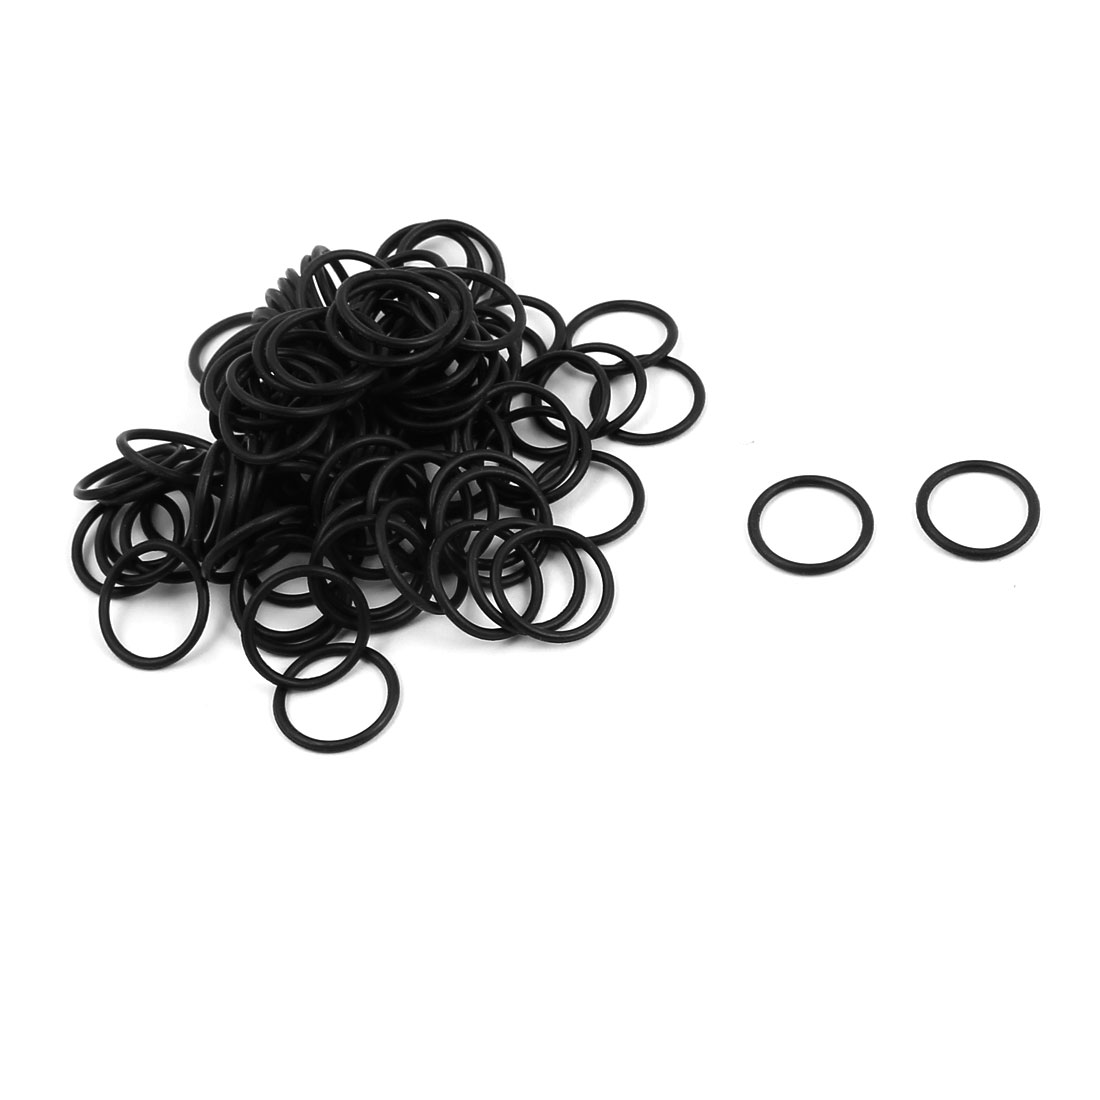 100Pcs Black 12mm x 1.2mm Nitrile Rubber O Ring NBR Oil Sealing Grommets